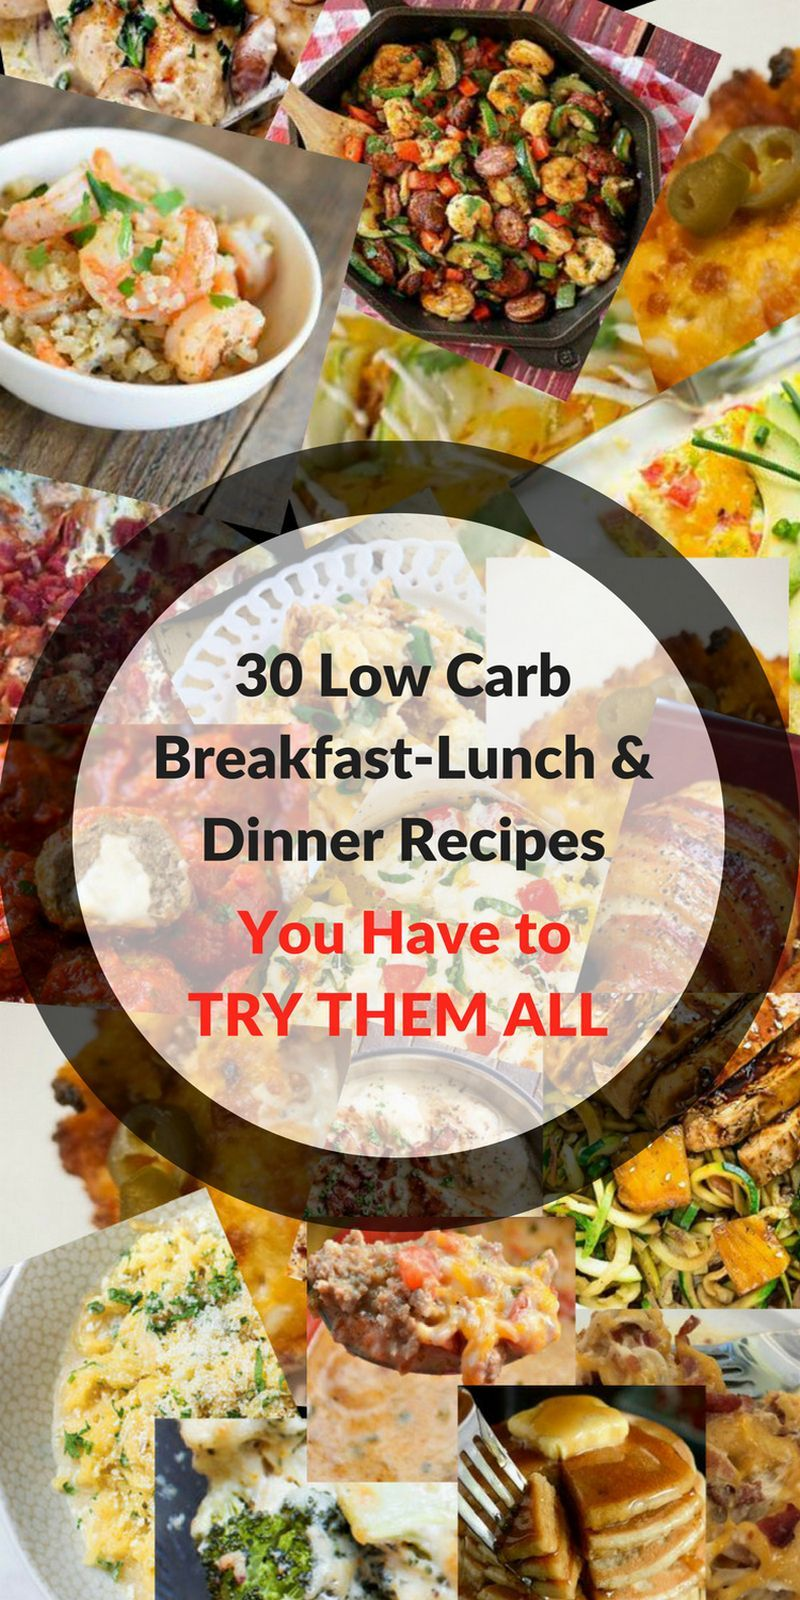 Avoid carbohydrates to lose weight